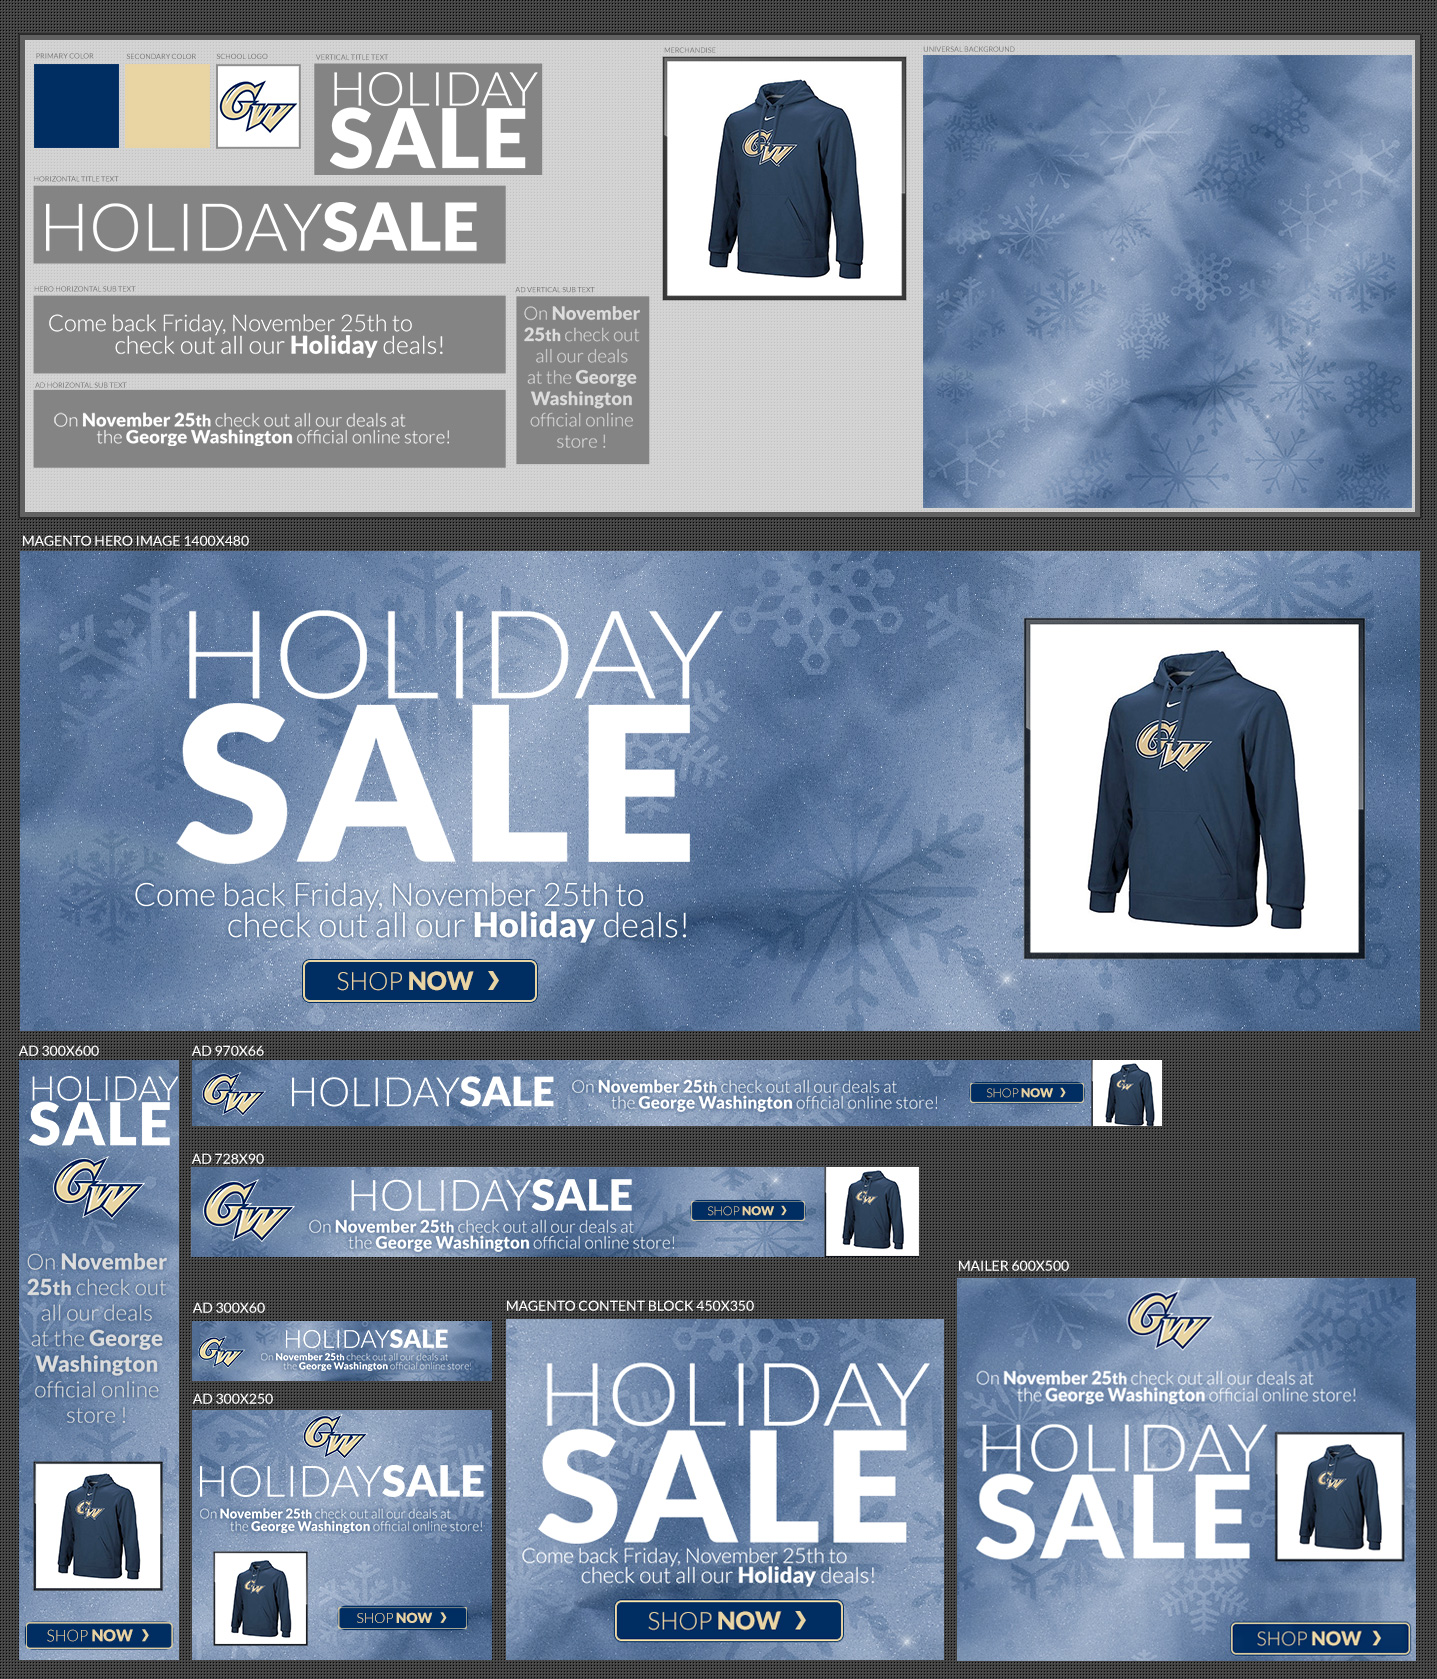 online-store-holiday-campaign.jpg